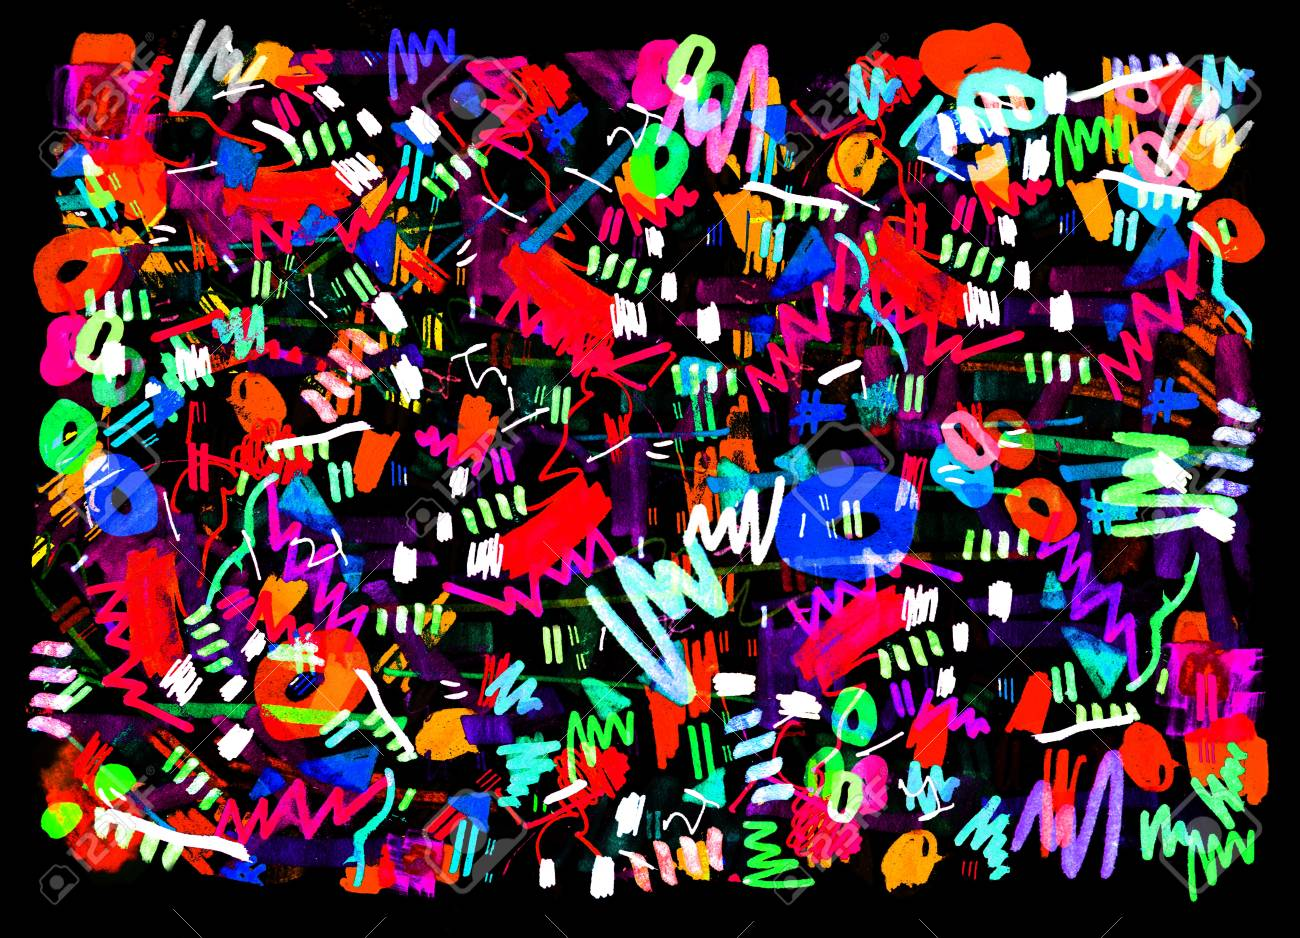 Bright Color Abstract Painting In Memphis Style